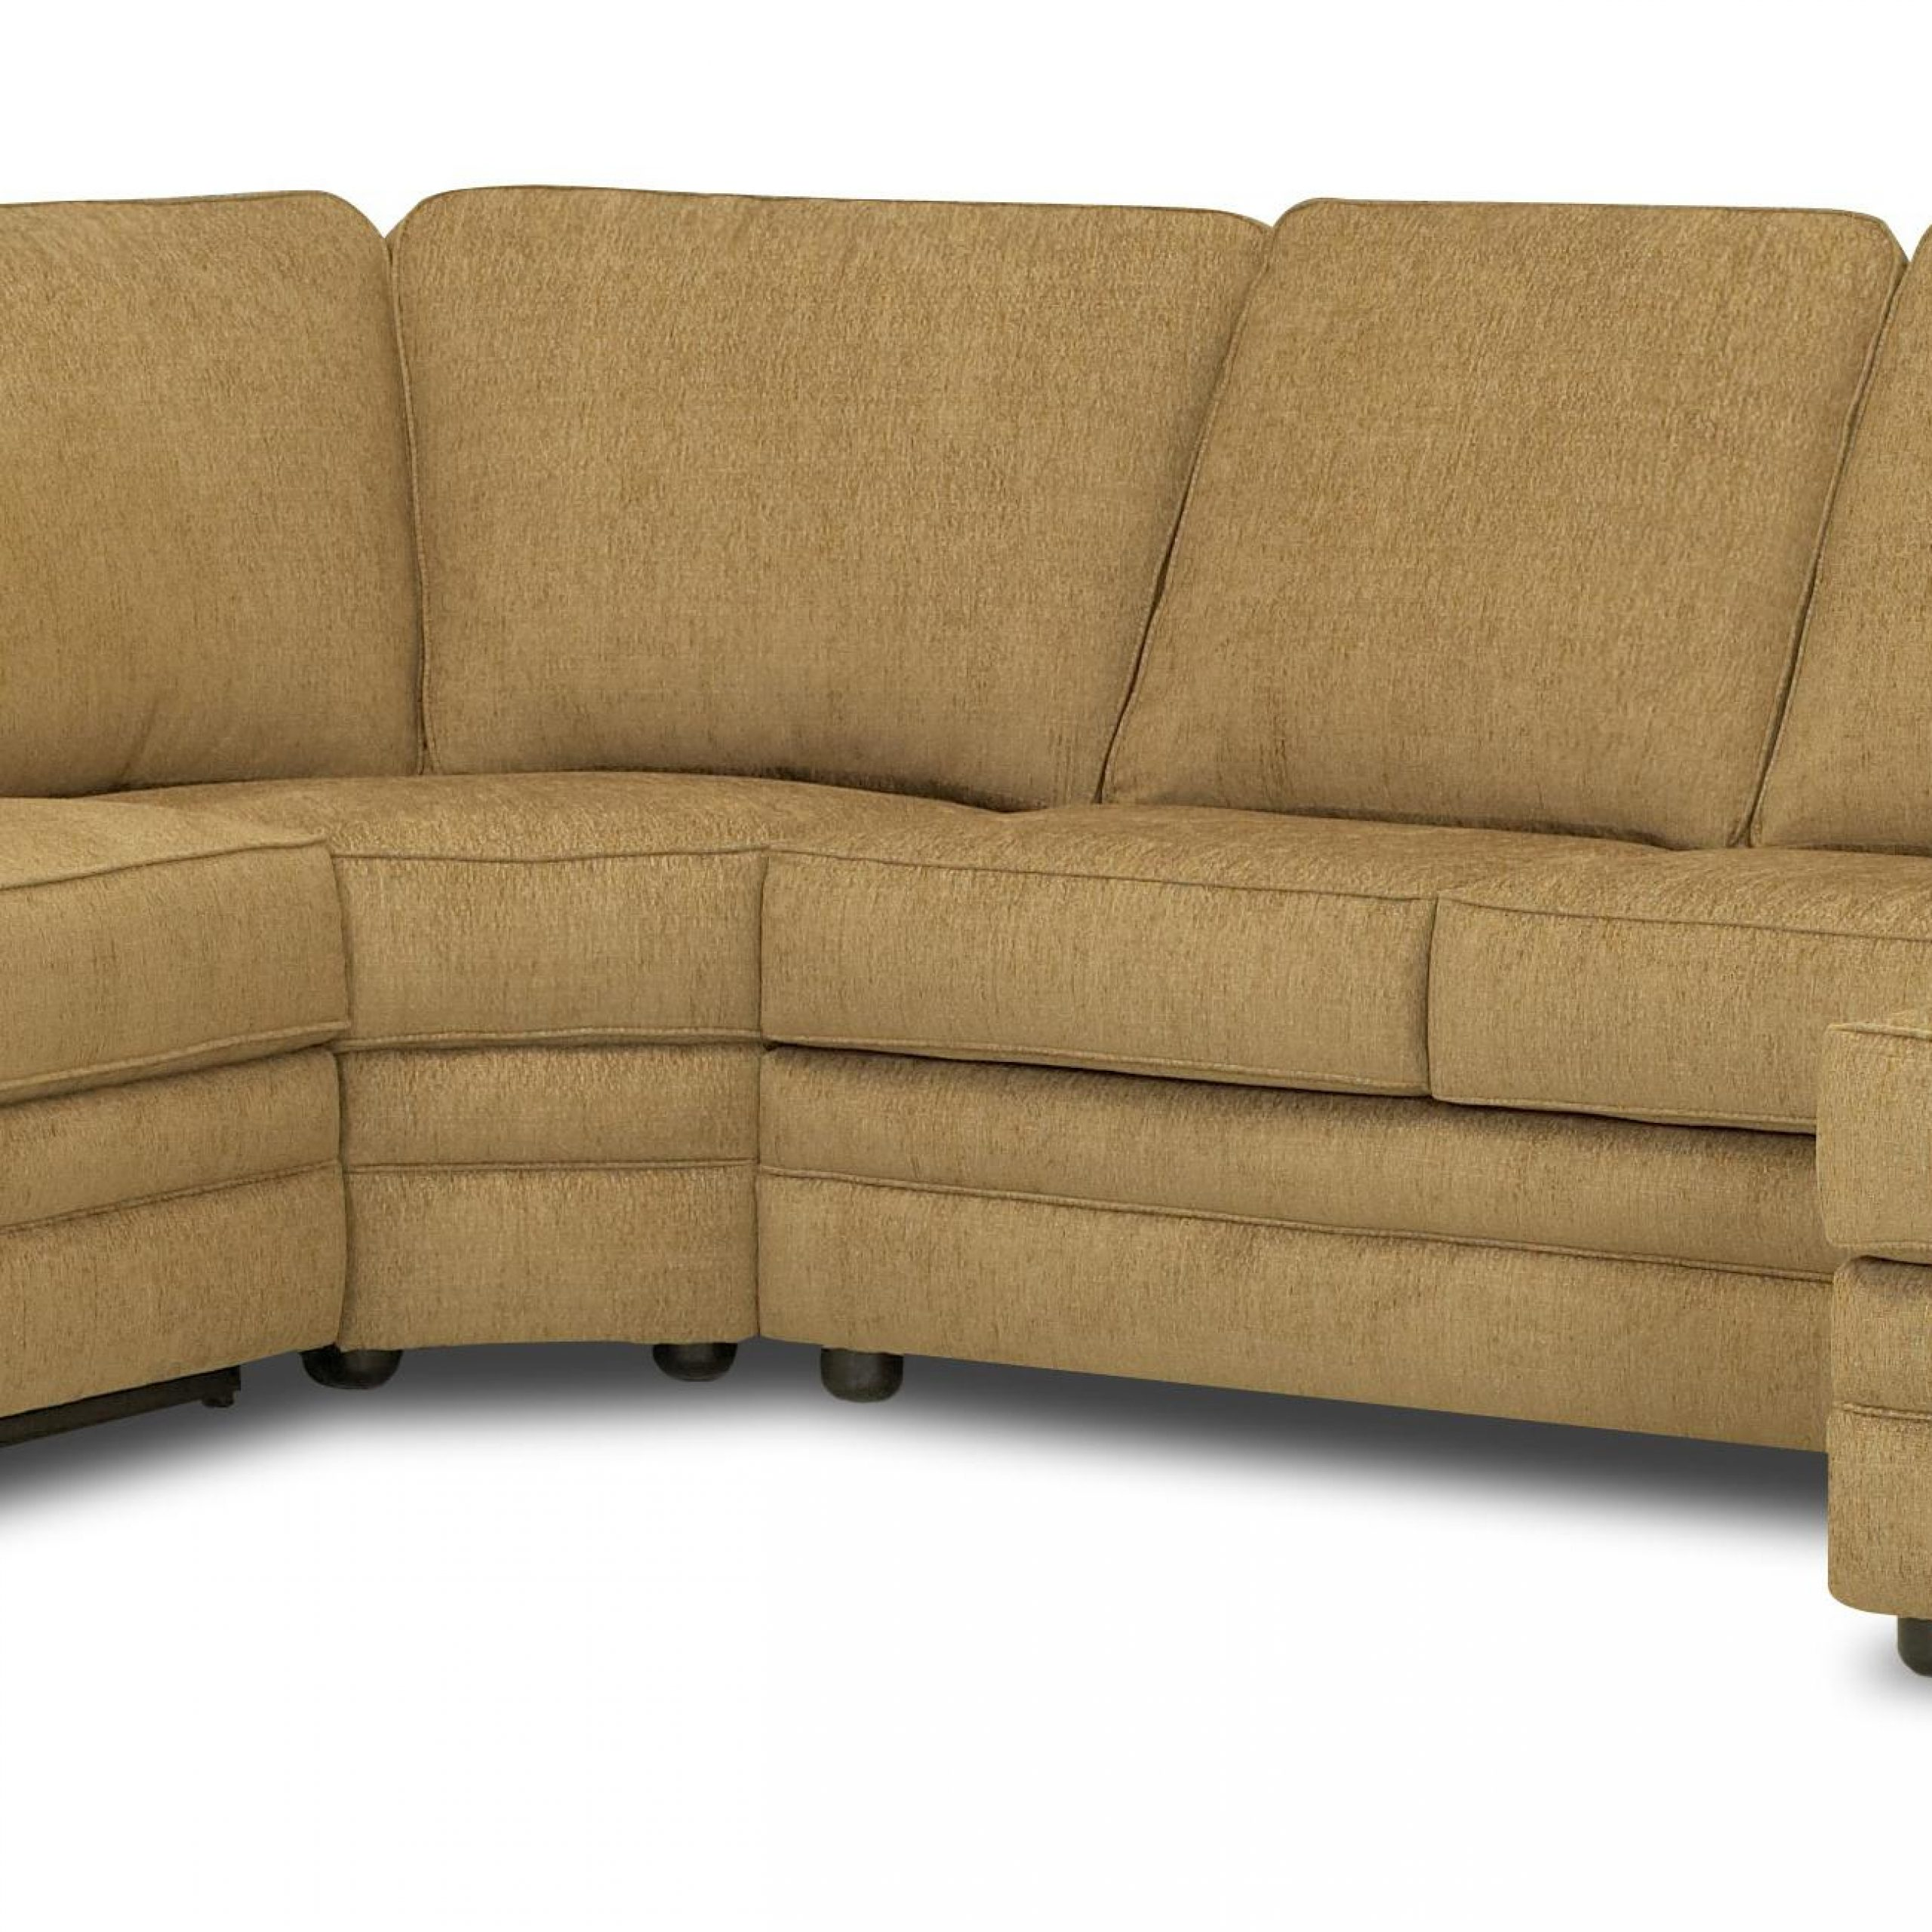 Well Known Reclining Sectional With Left Side Chaiseklaussner Throughout Copenhagen Reclining Sectional Sofas With Right Storage Chaise (View 16 of 20)